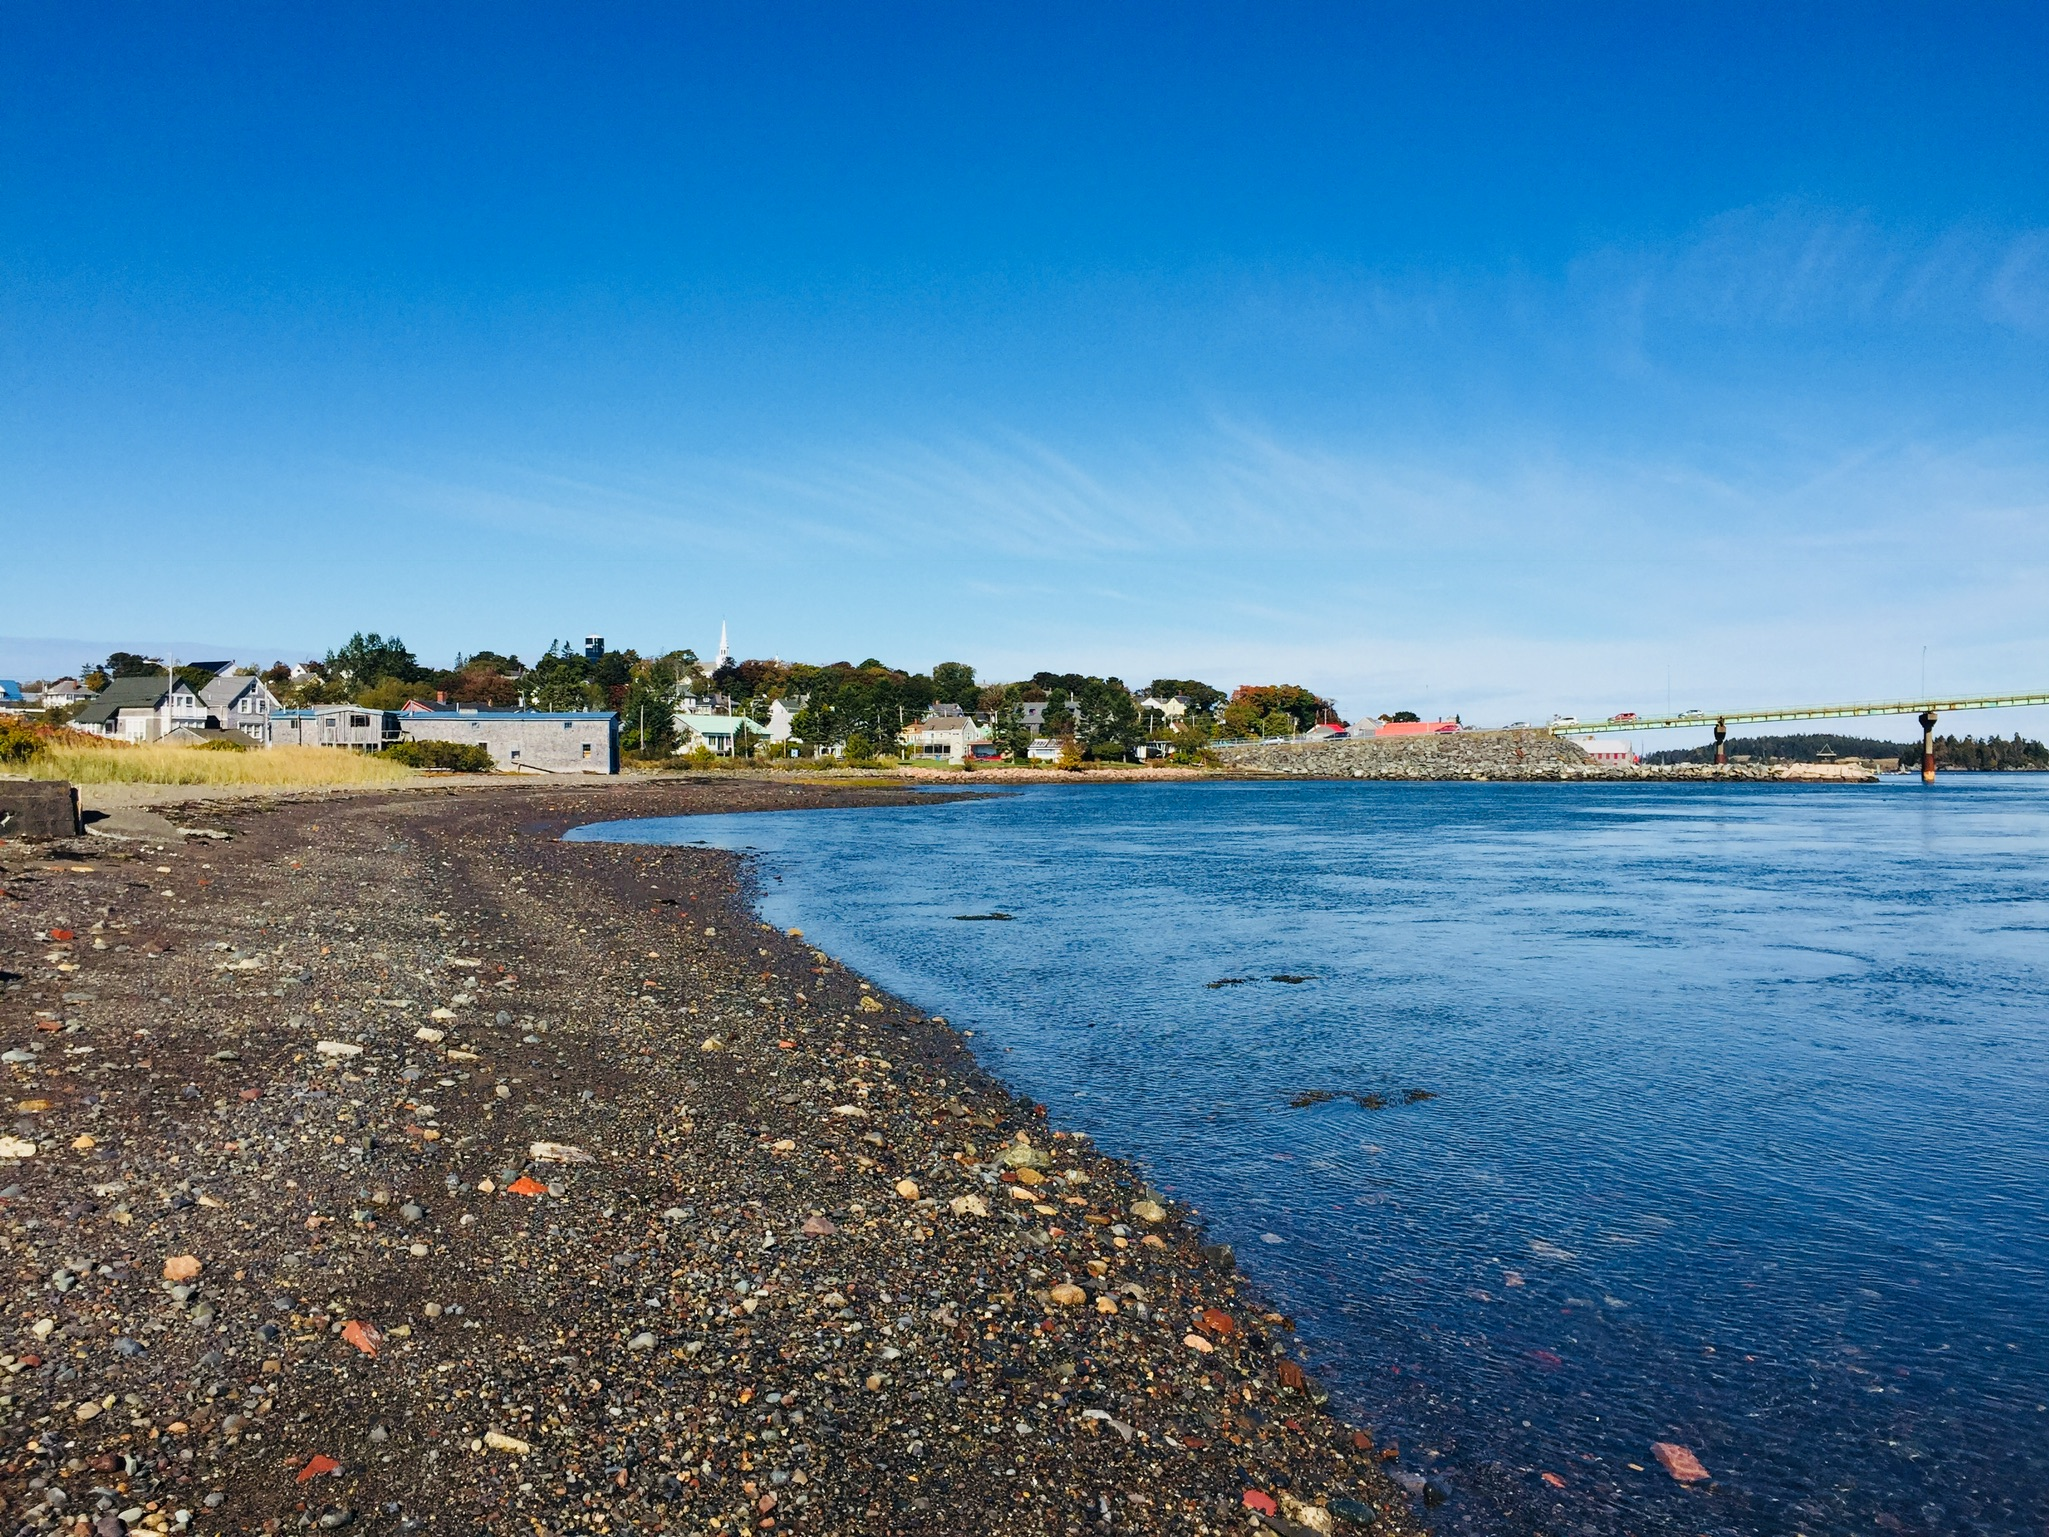 View of downtown Lubec and the international bridge to Campobello from Mowry Beach